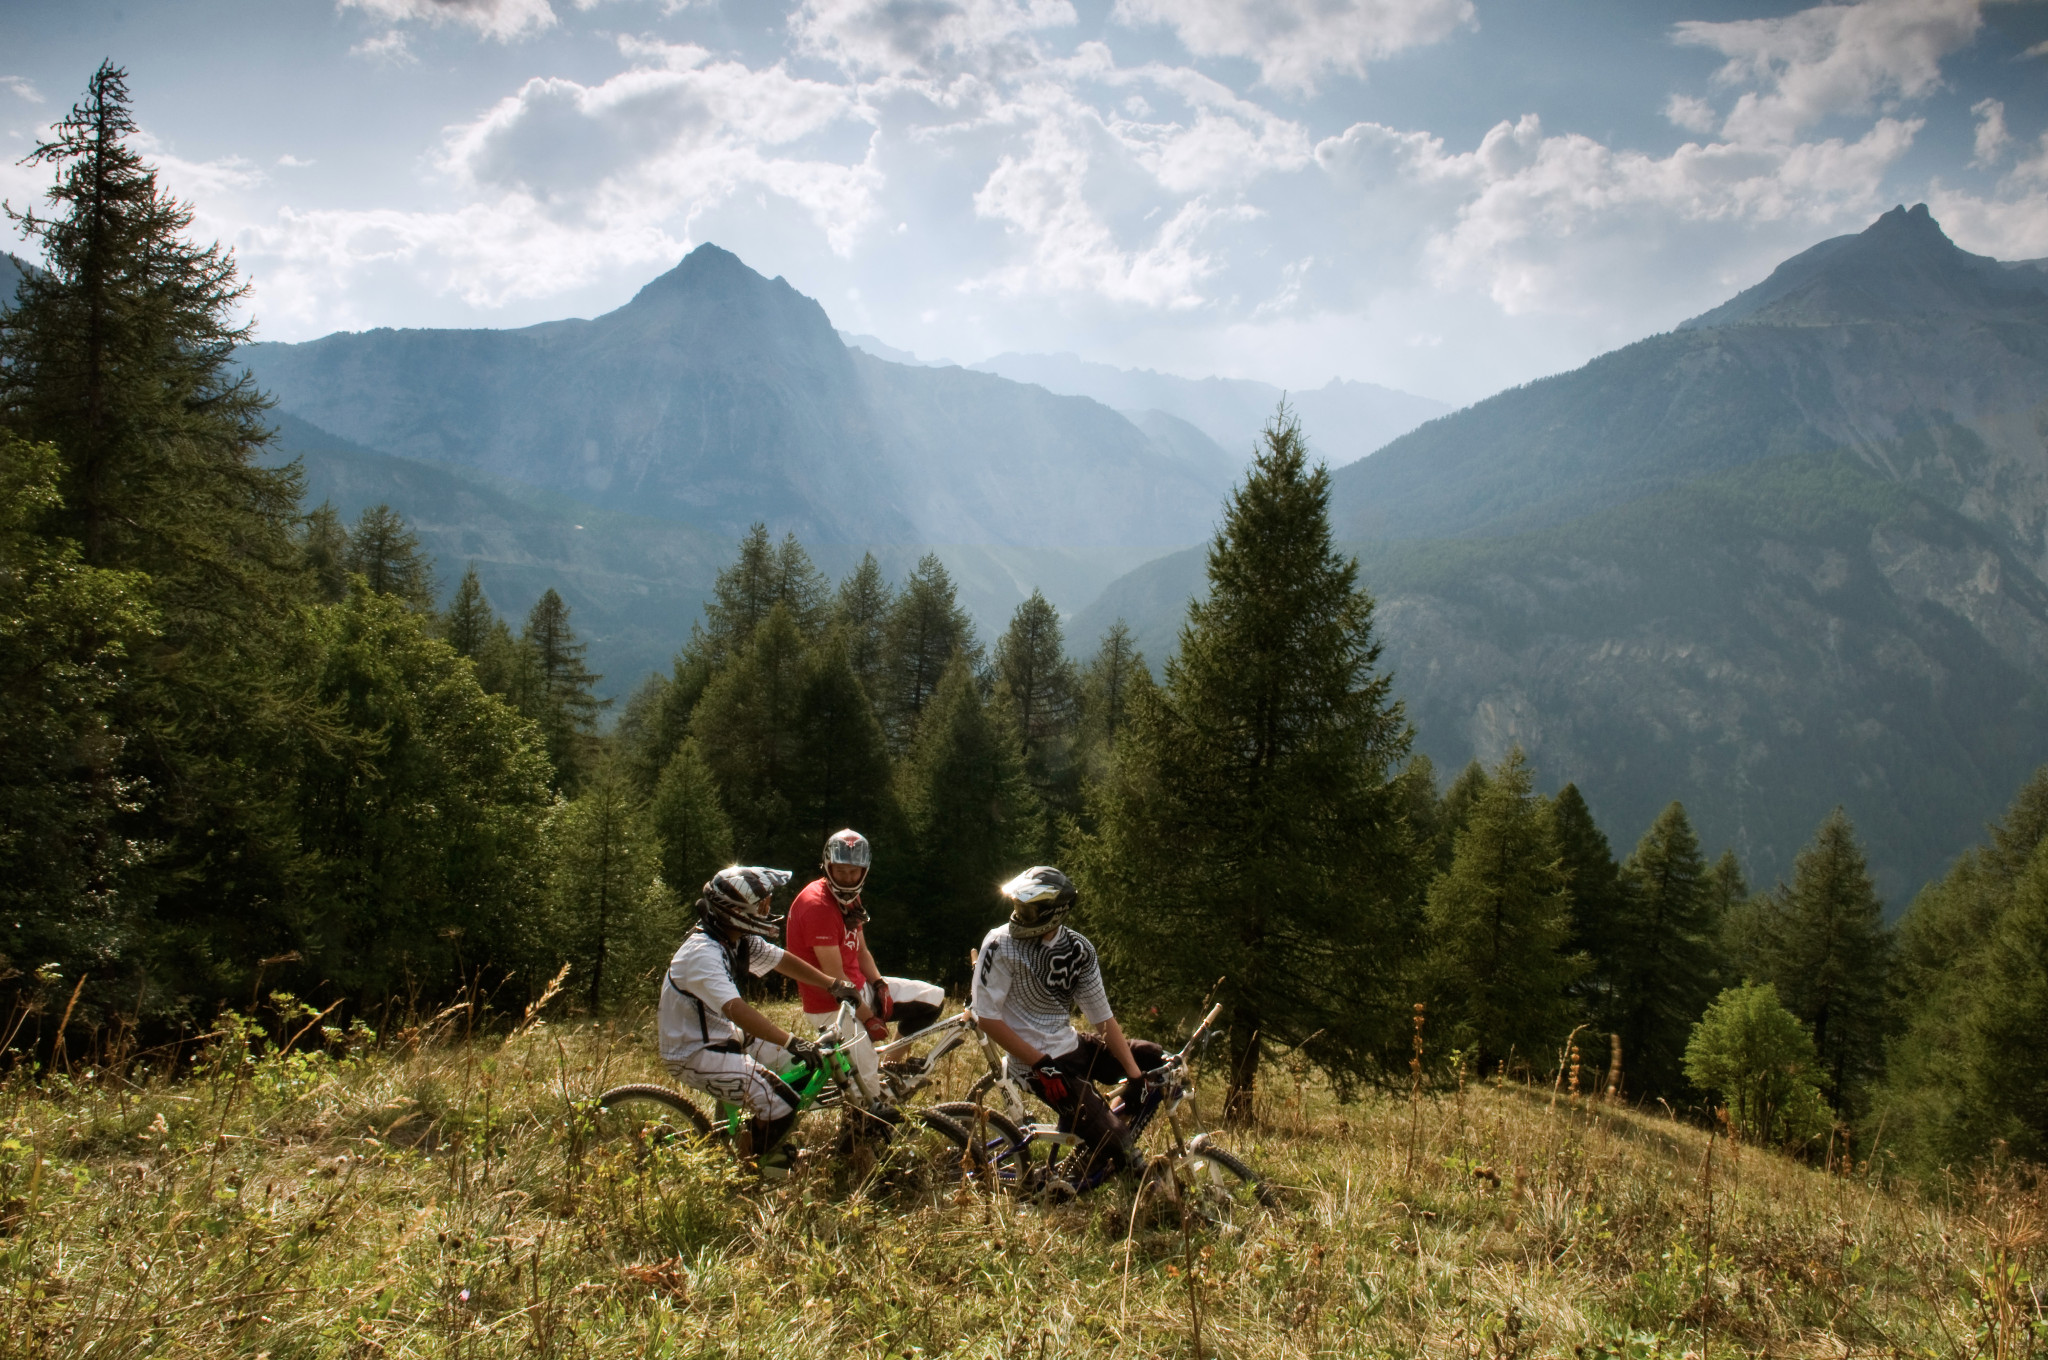 Photo: In August 2011, the WorldBikeParks.com Ultimate Road Trip team rolled into Bardonecchia, Italy, for 3 fantastic days of bike park riding.  Local riders Alex and Riki showed us the way around, and we even bumped into the Athertons, Gee and Rachel, on the final morning. Here, Alex, Riki and WorldBikeParks.com rider David Scorer discuss the trail amidst stunning scenery.